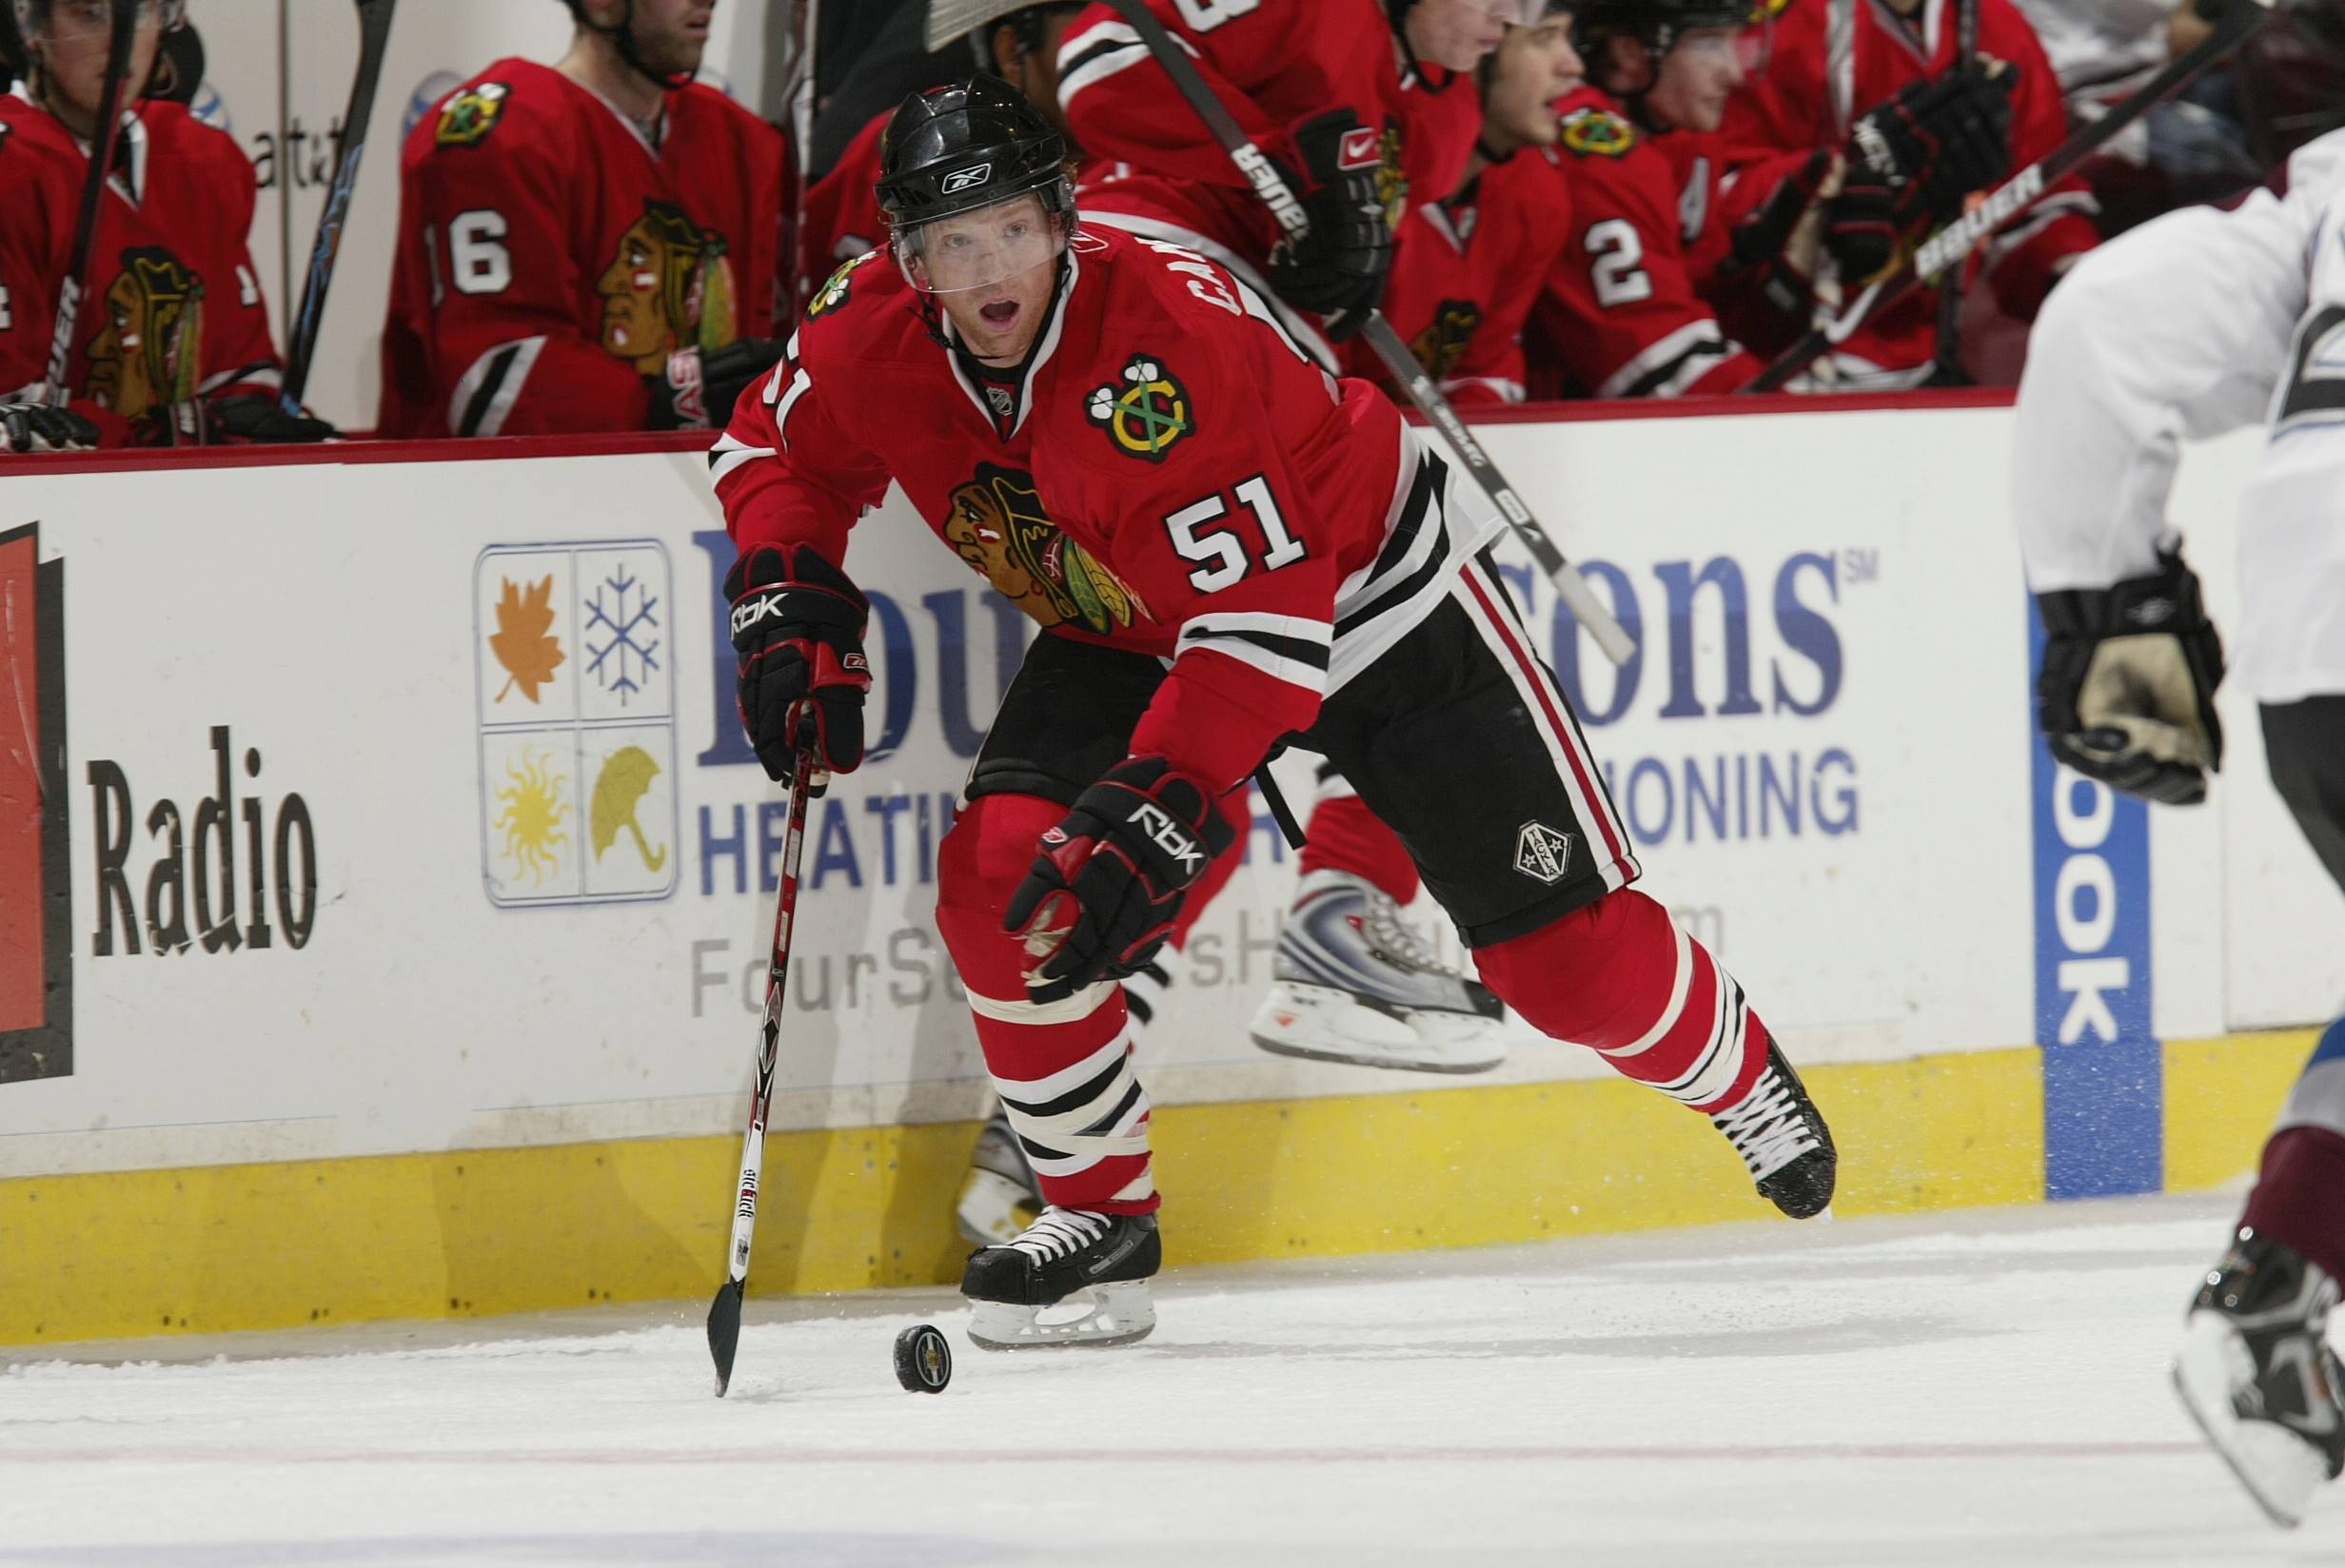 The Blackhawks and Brian Campbell have agreed to terms on a one-year deal. Campbell played with the Hawks from 2008-11, winning a Stanley Cup in 2010.